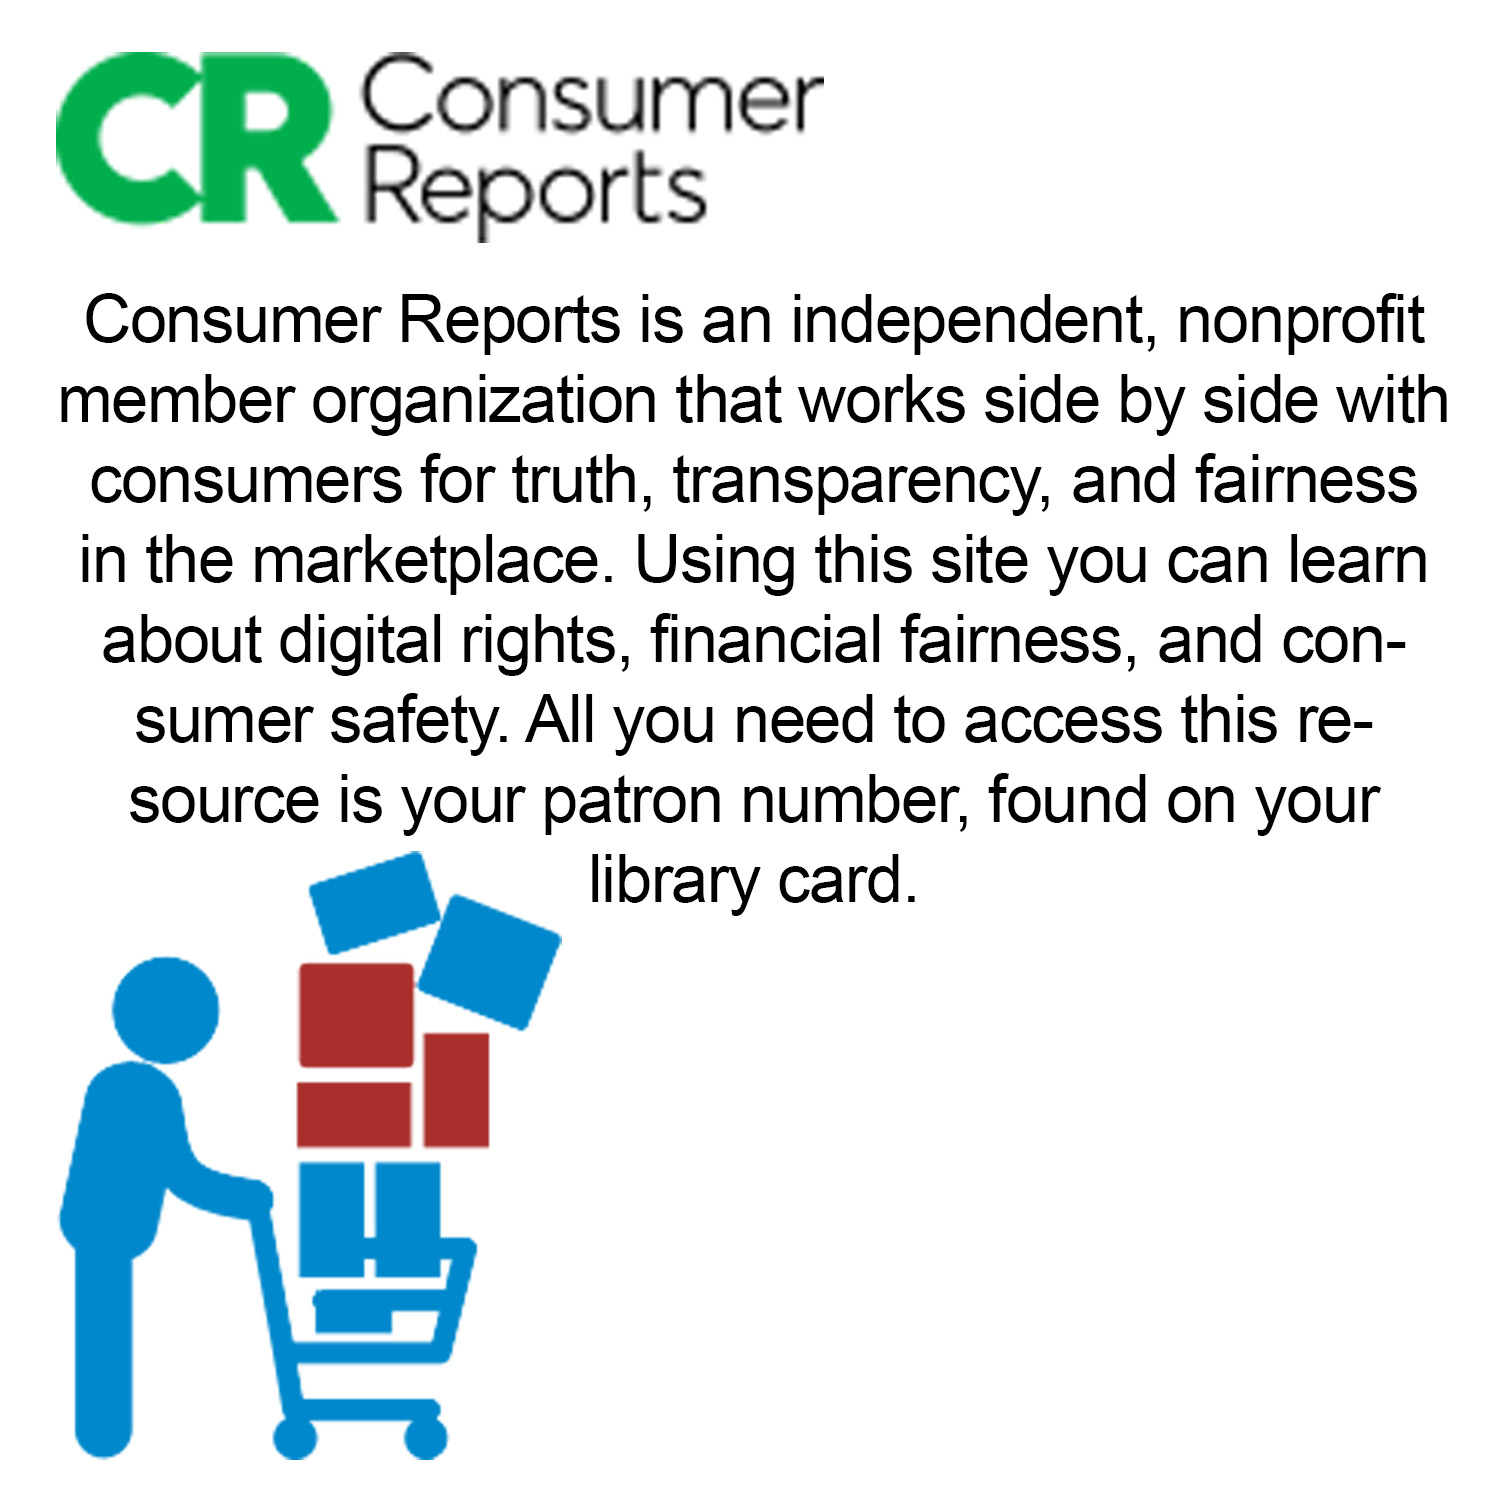 Small image with a synopsis of Ebsco consumer reports database  with clickable link